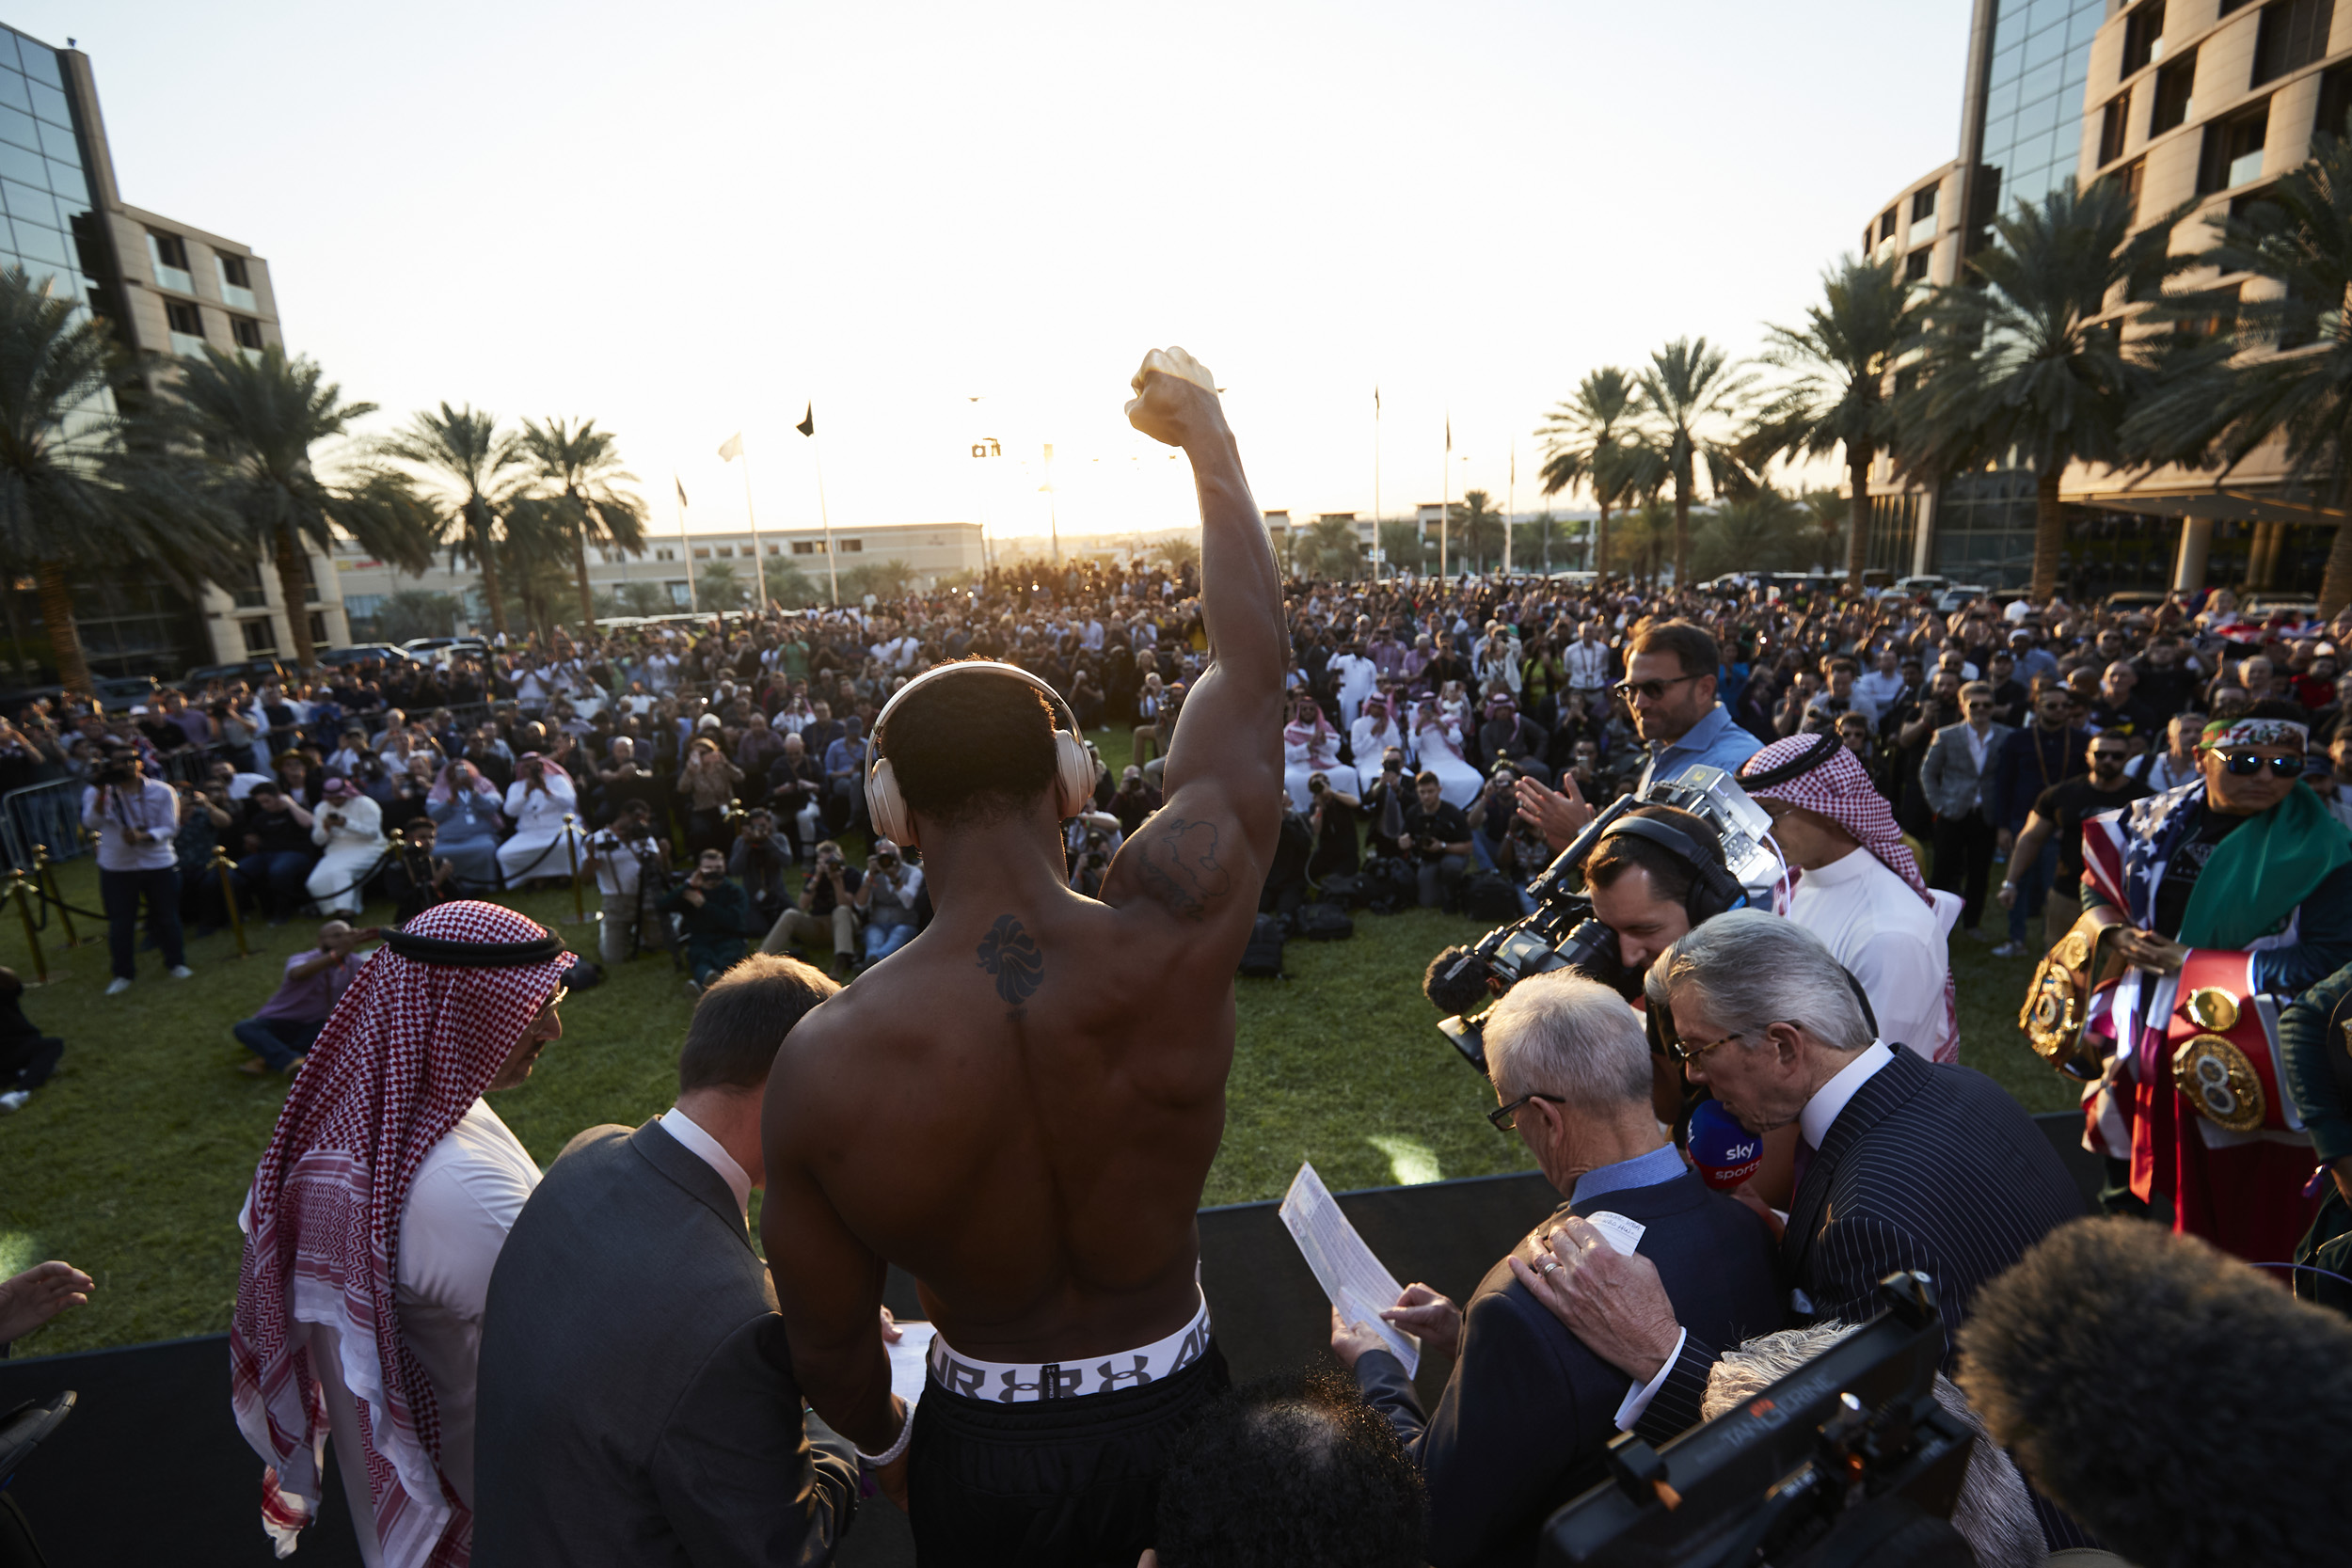 Anthony Joshua Andy Ruiz Jr Weigh In Fist uptown Crowd Saudi Arabia Rematch © Mark Robinson Photographer Matchrrom Boxing